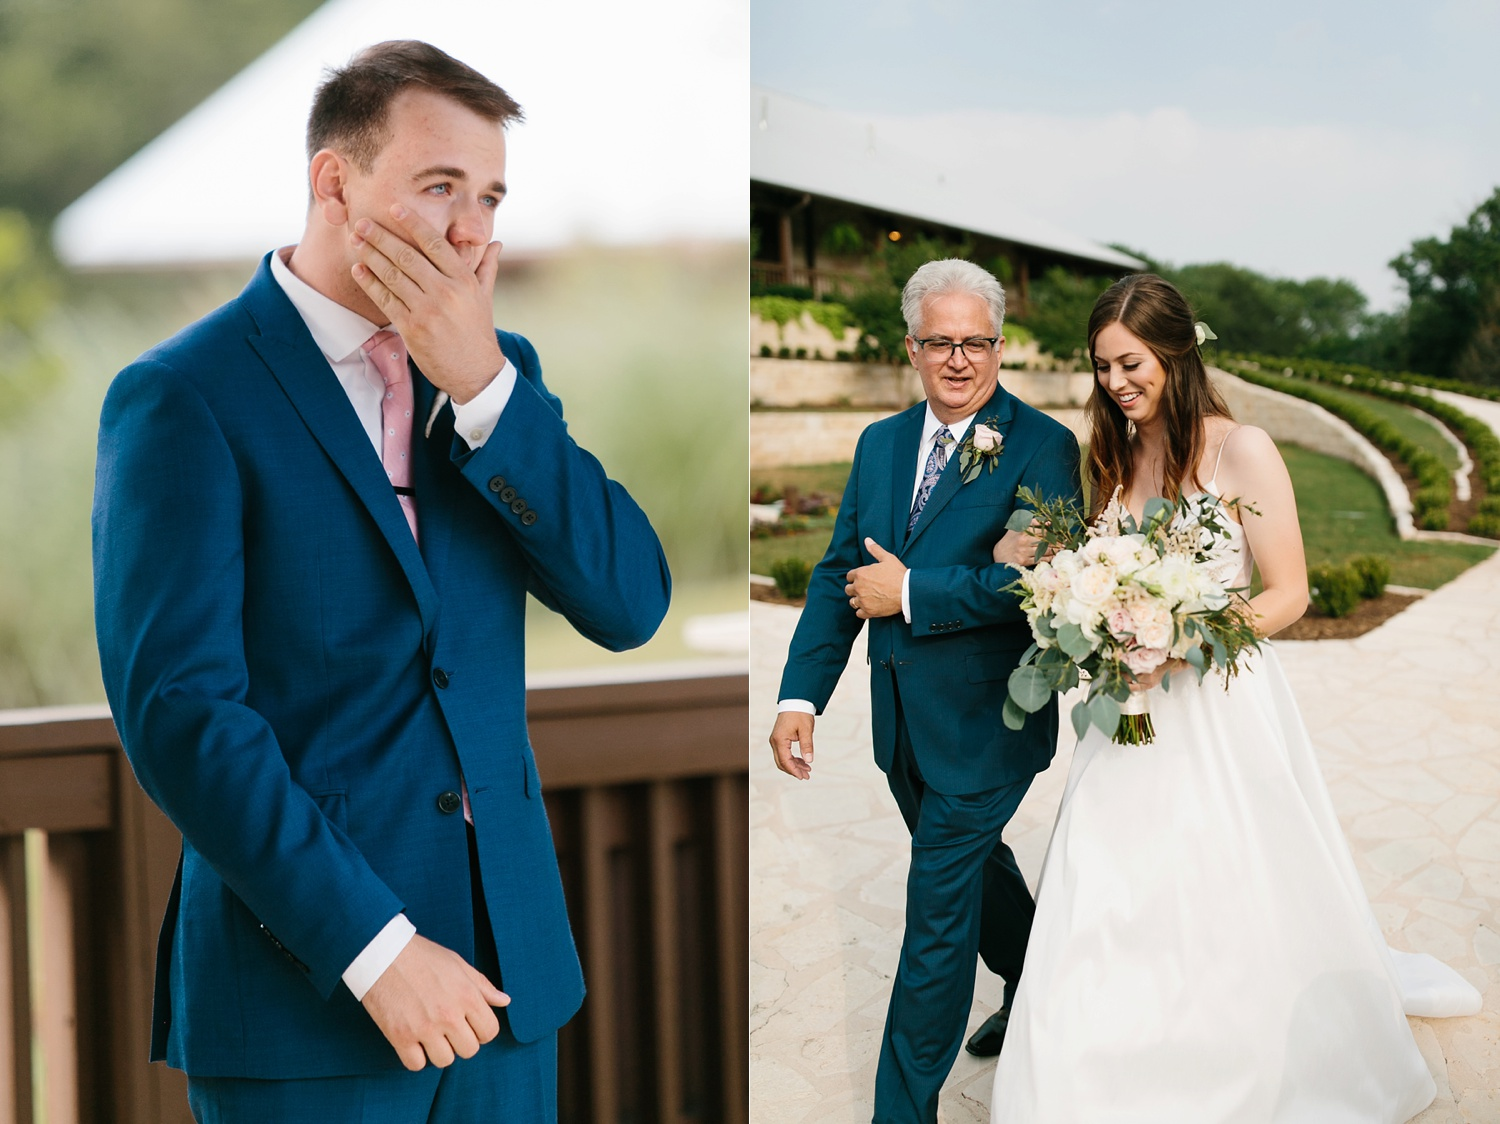 Aleta + Sabian a blush pink and navy blue wedding at The Springs in Anna, TX by North Texas Wedding Photographer _ Rachel Meagan Photography _ 048